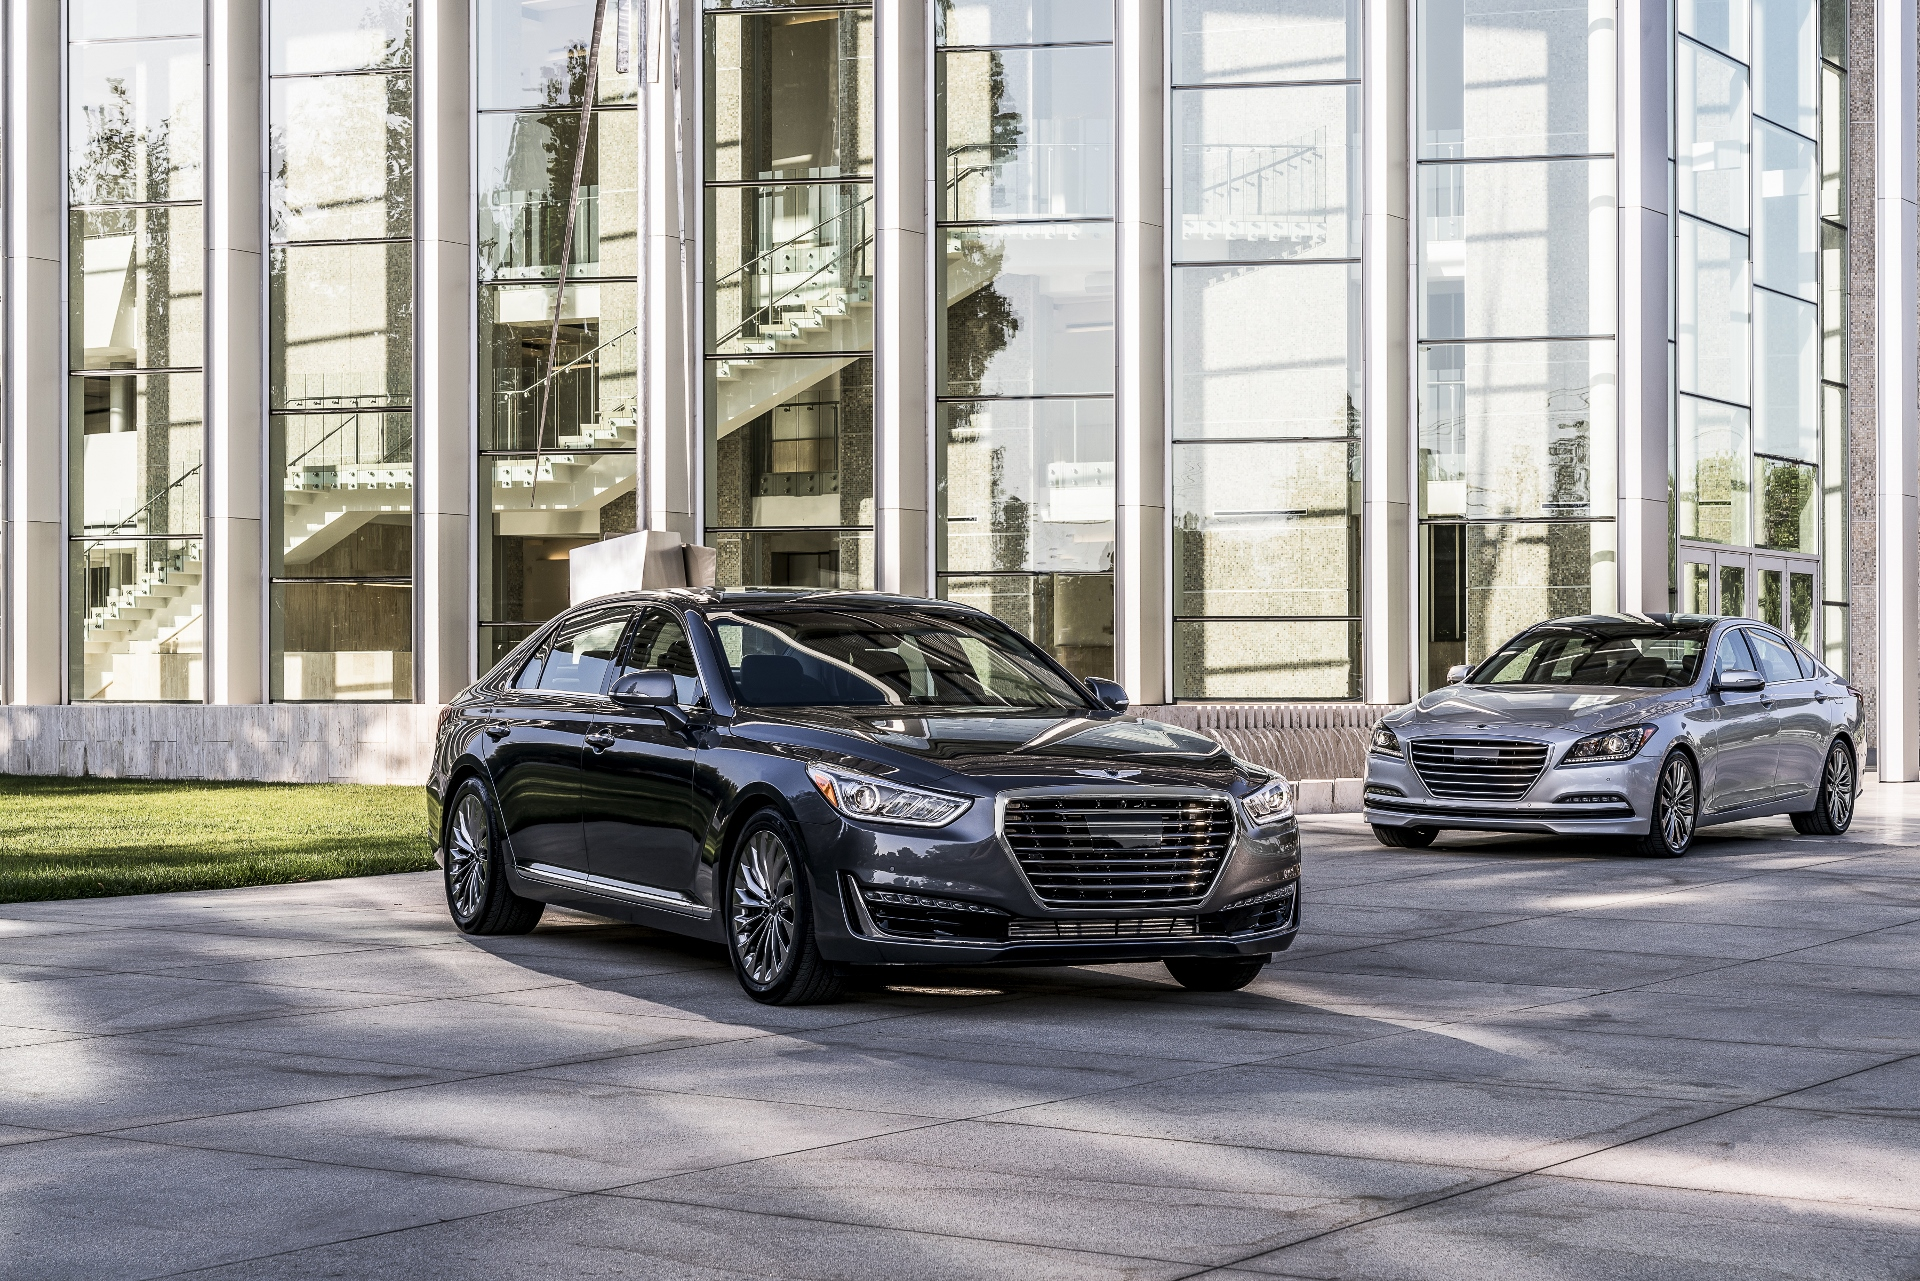 2017 lincoln continental vs 2017 genesis g90 compare cars. Black Bedroom Furniture Sets. Home Design Ideas